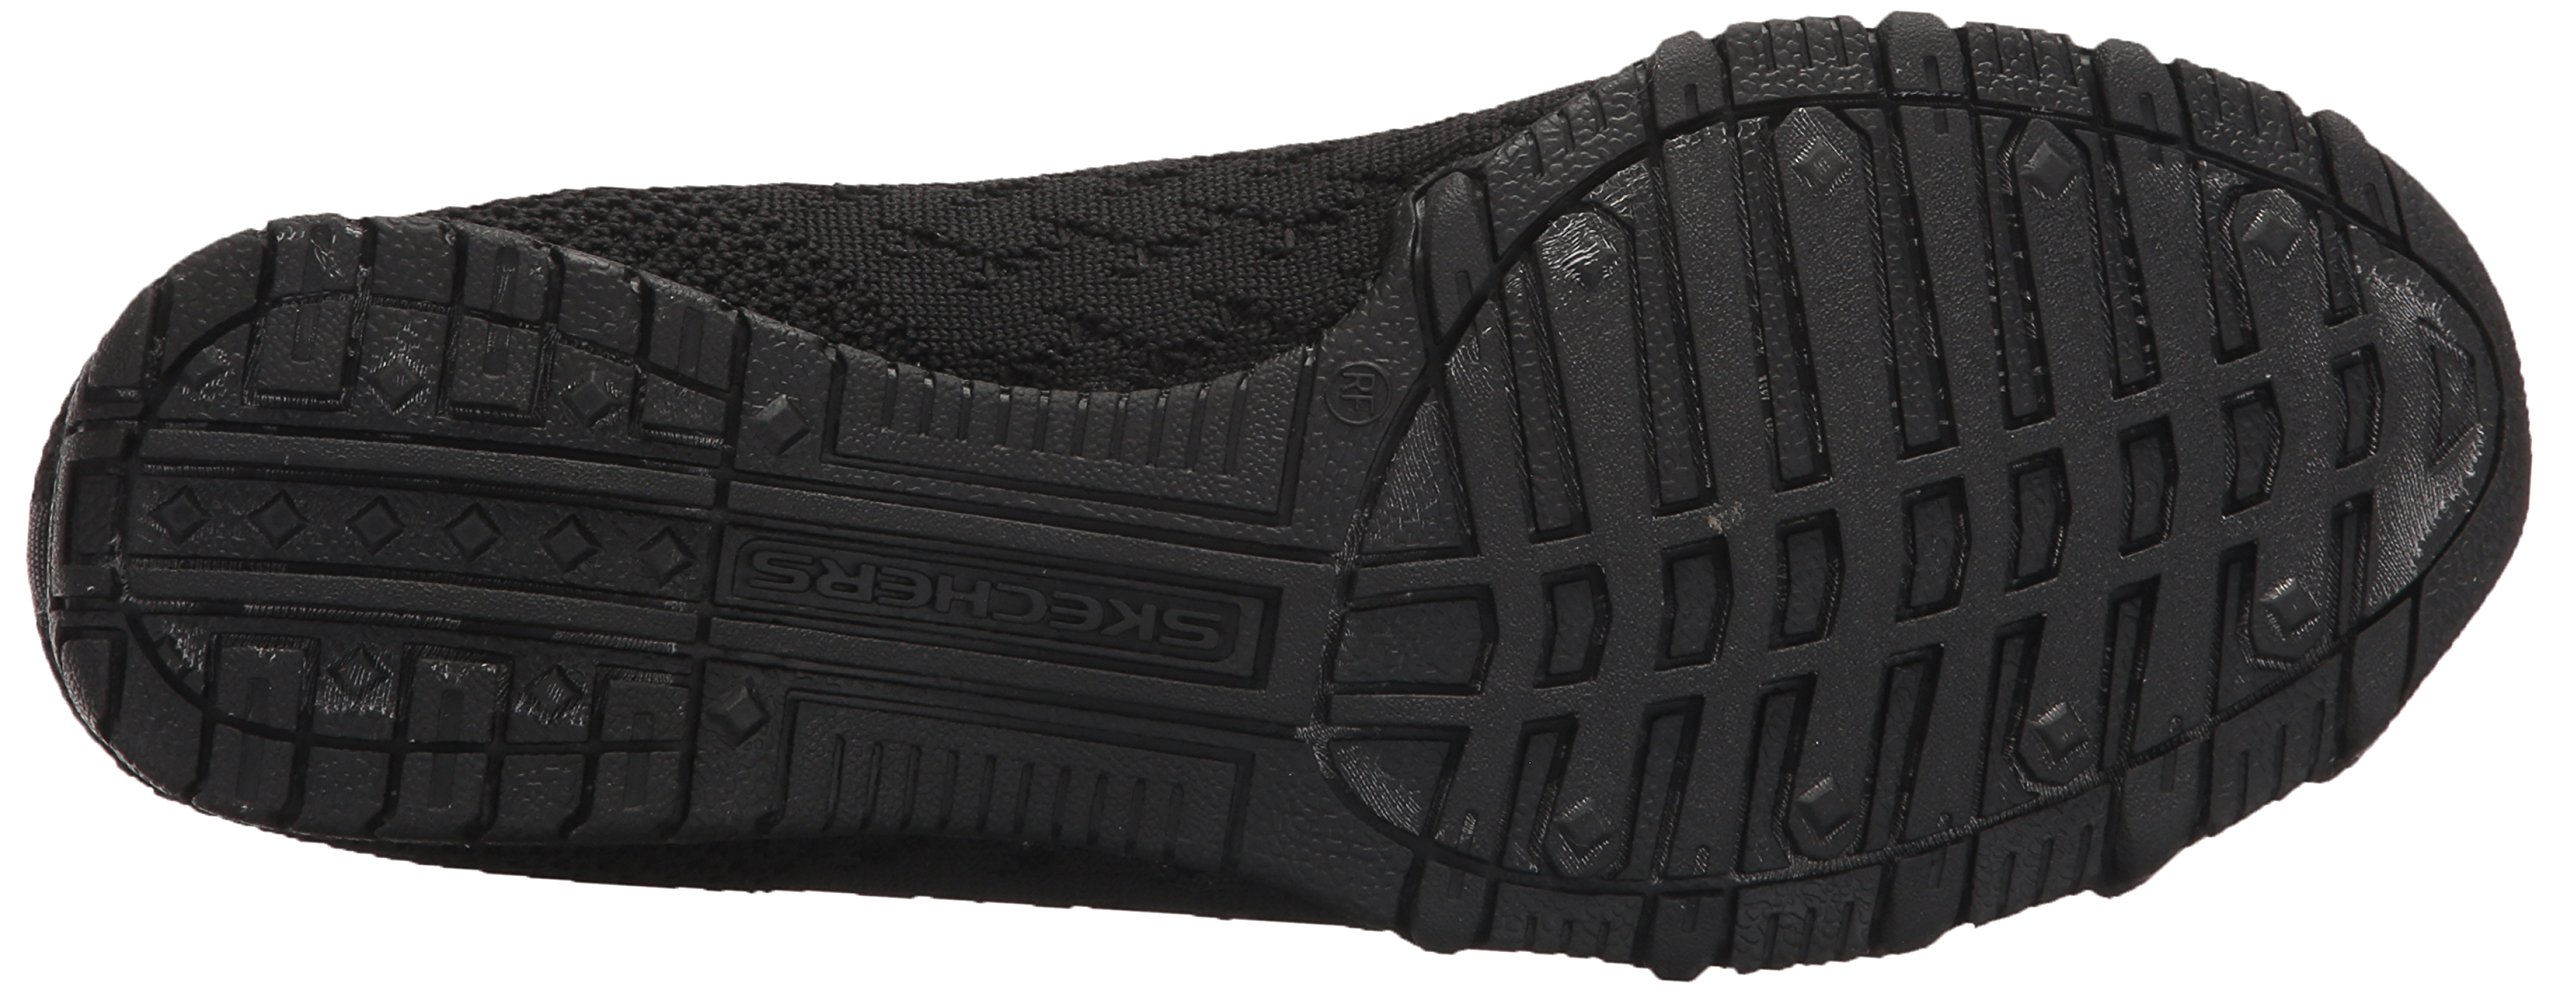 Skechers Women's Bikers-Witty Knit Ballet Flat, black, 10 Extra Wide US by Skechers (Image #3)